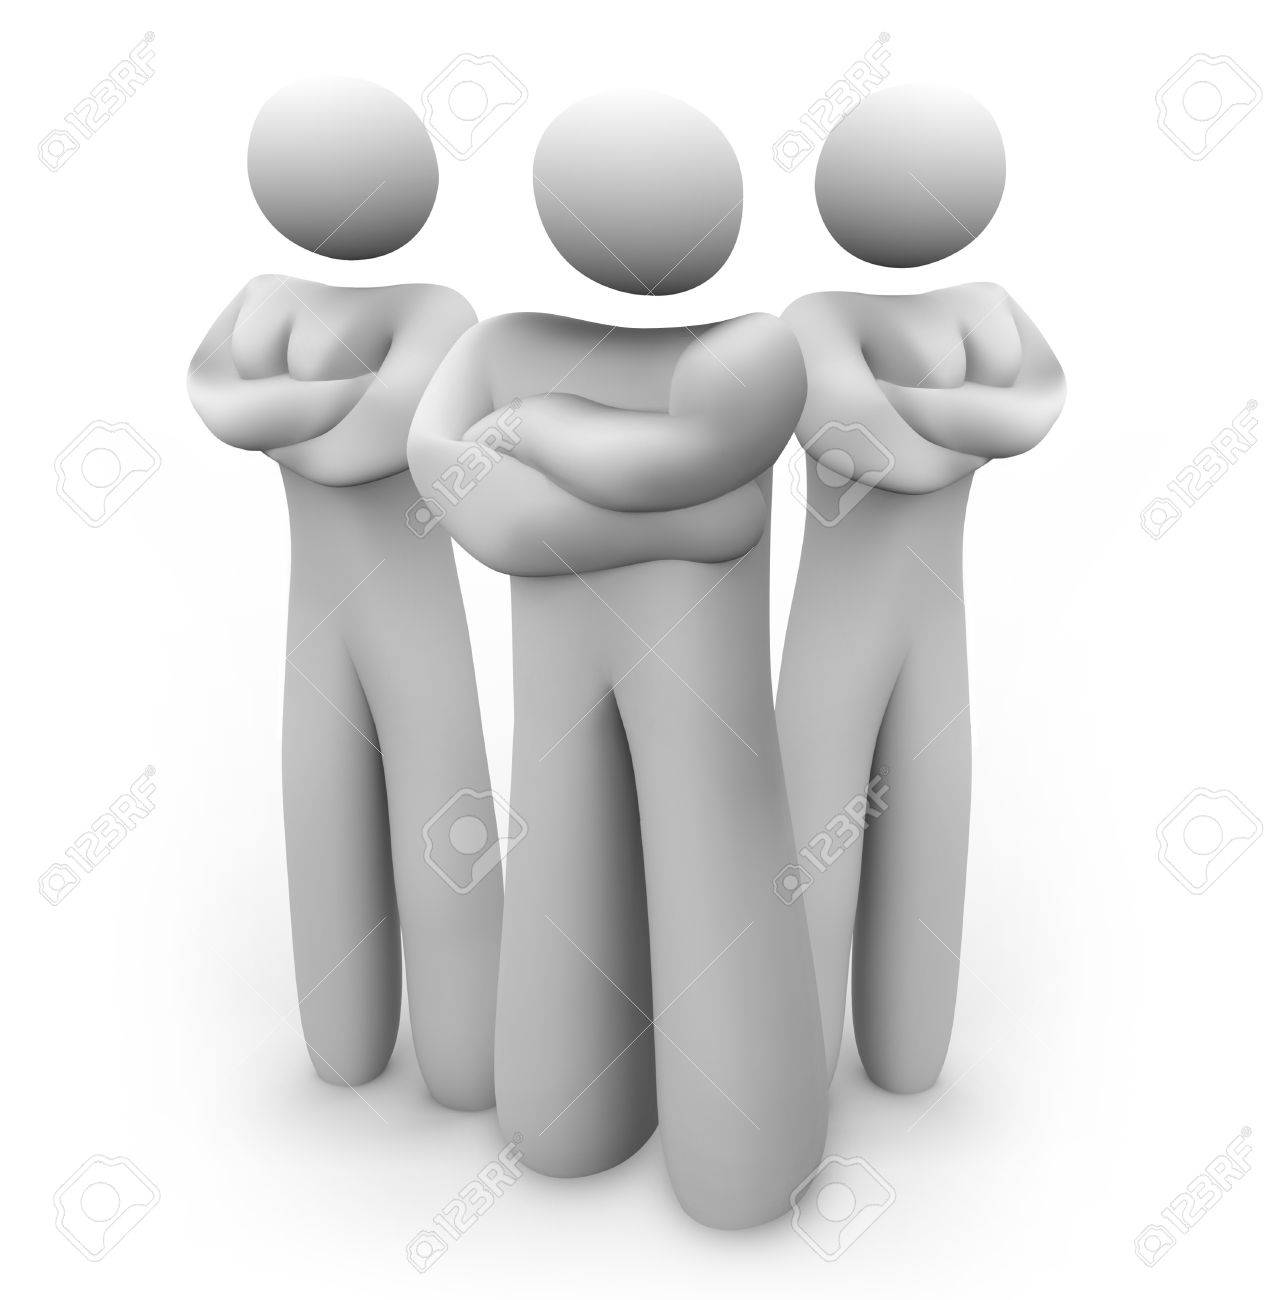 Two women and one man stand with arms crossed, in a guarding, serious, security position as if to say We Mean Business and send you disapproving, stern looks Stock Photo - 10385606